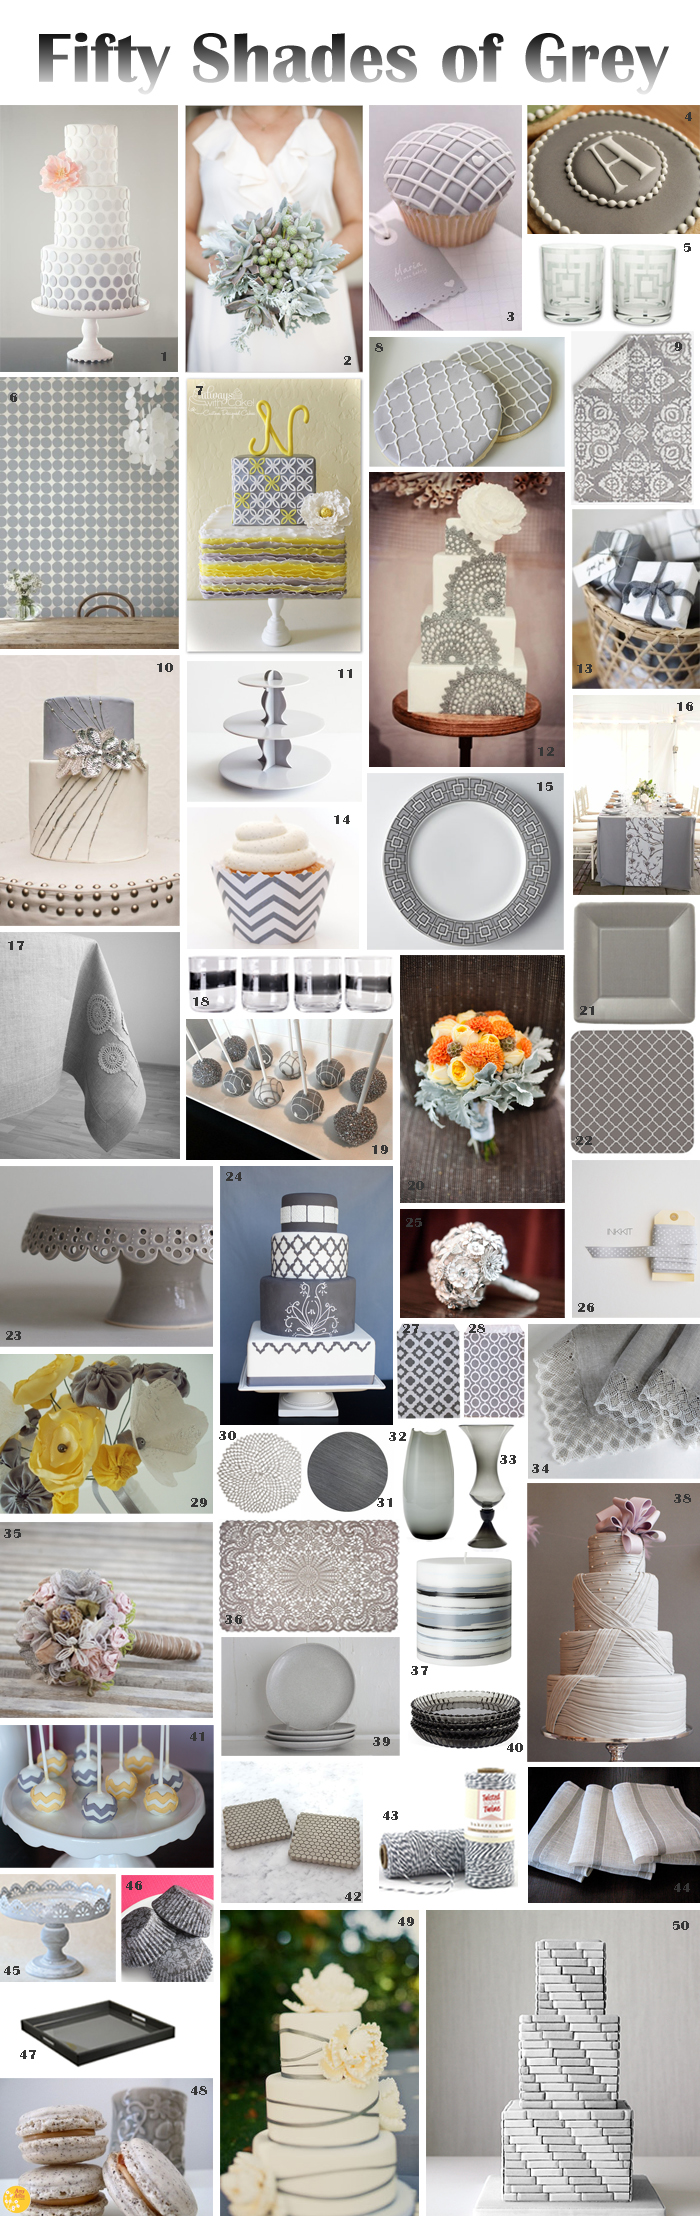 50 Shades Grey Fall Trend: 50 Shades of Grey Entertaining